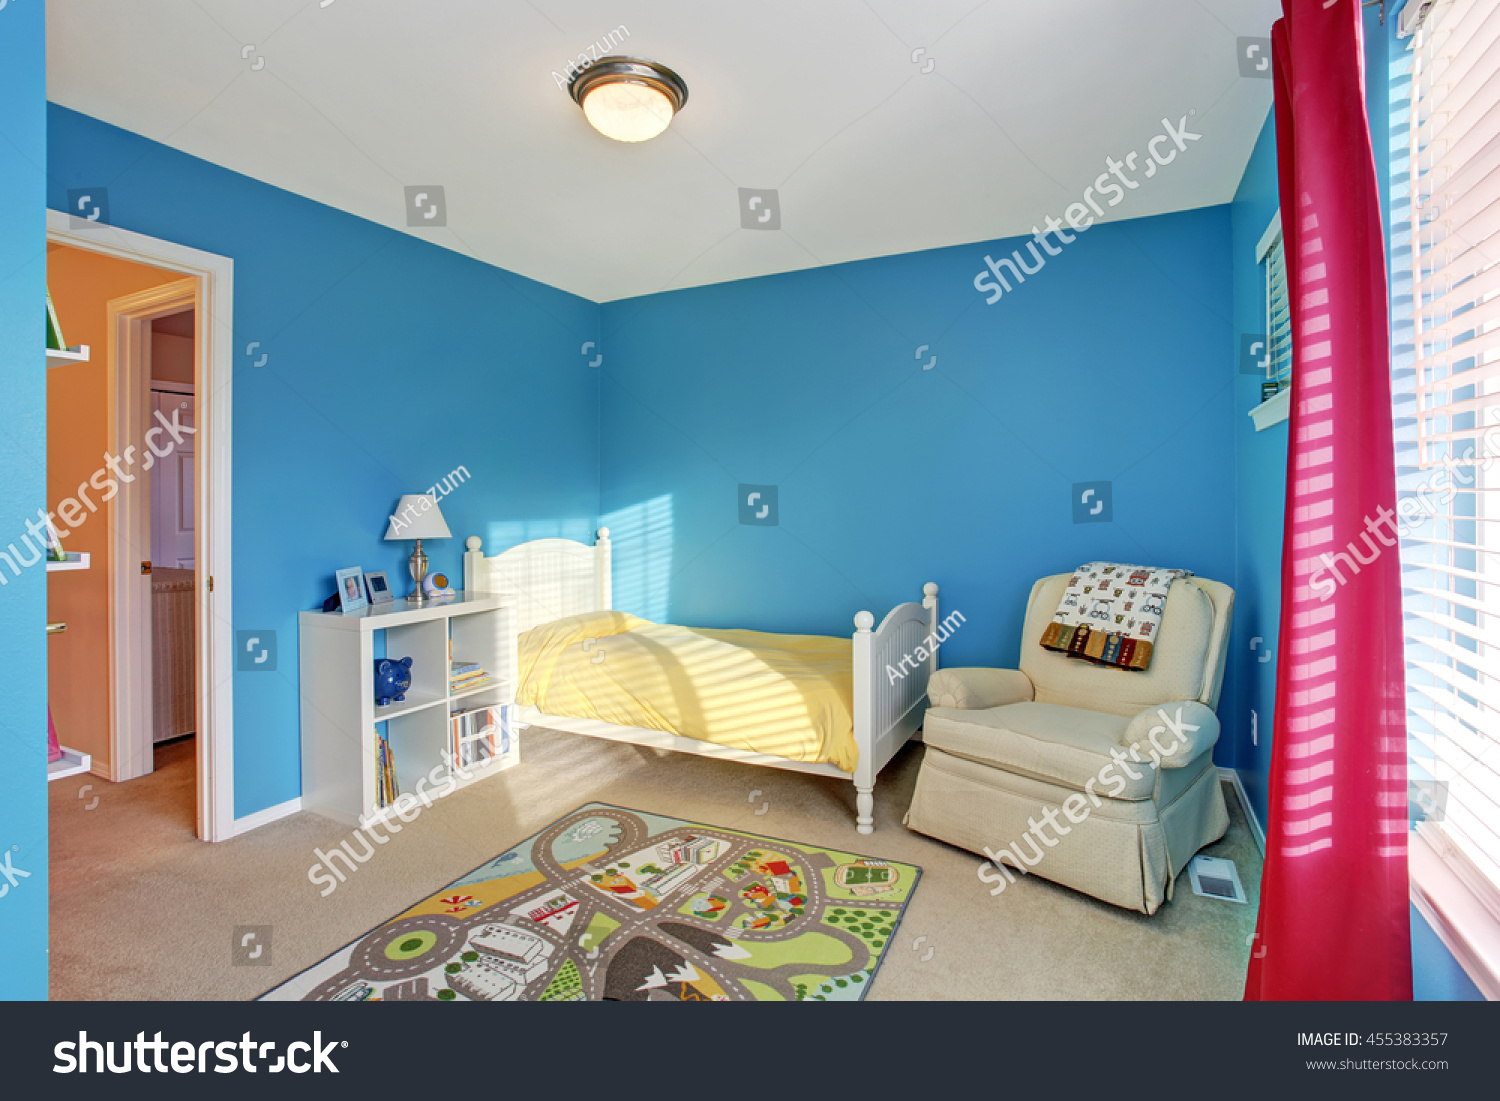 Image of: Cute Kids Room Blue Walls Carpet Stock Photo Edit Now 455383357